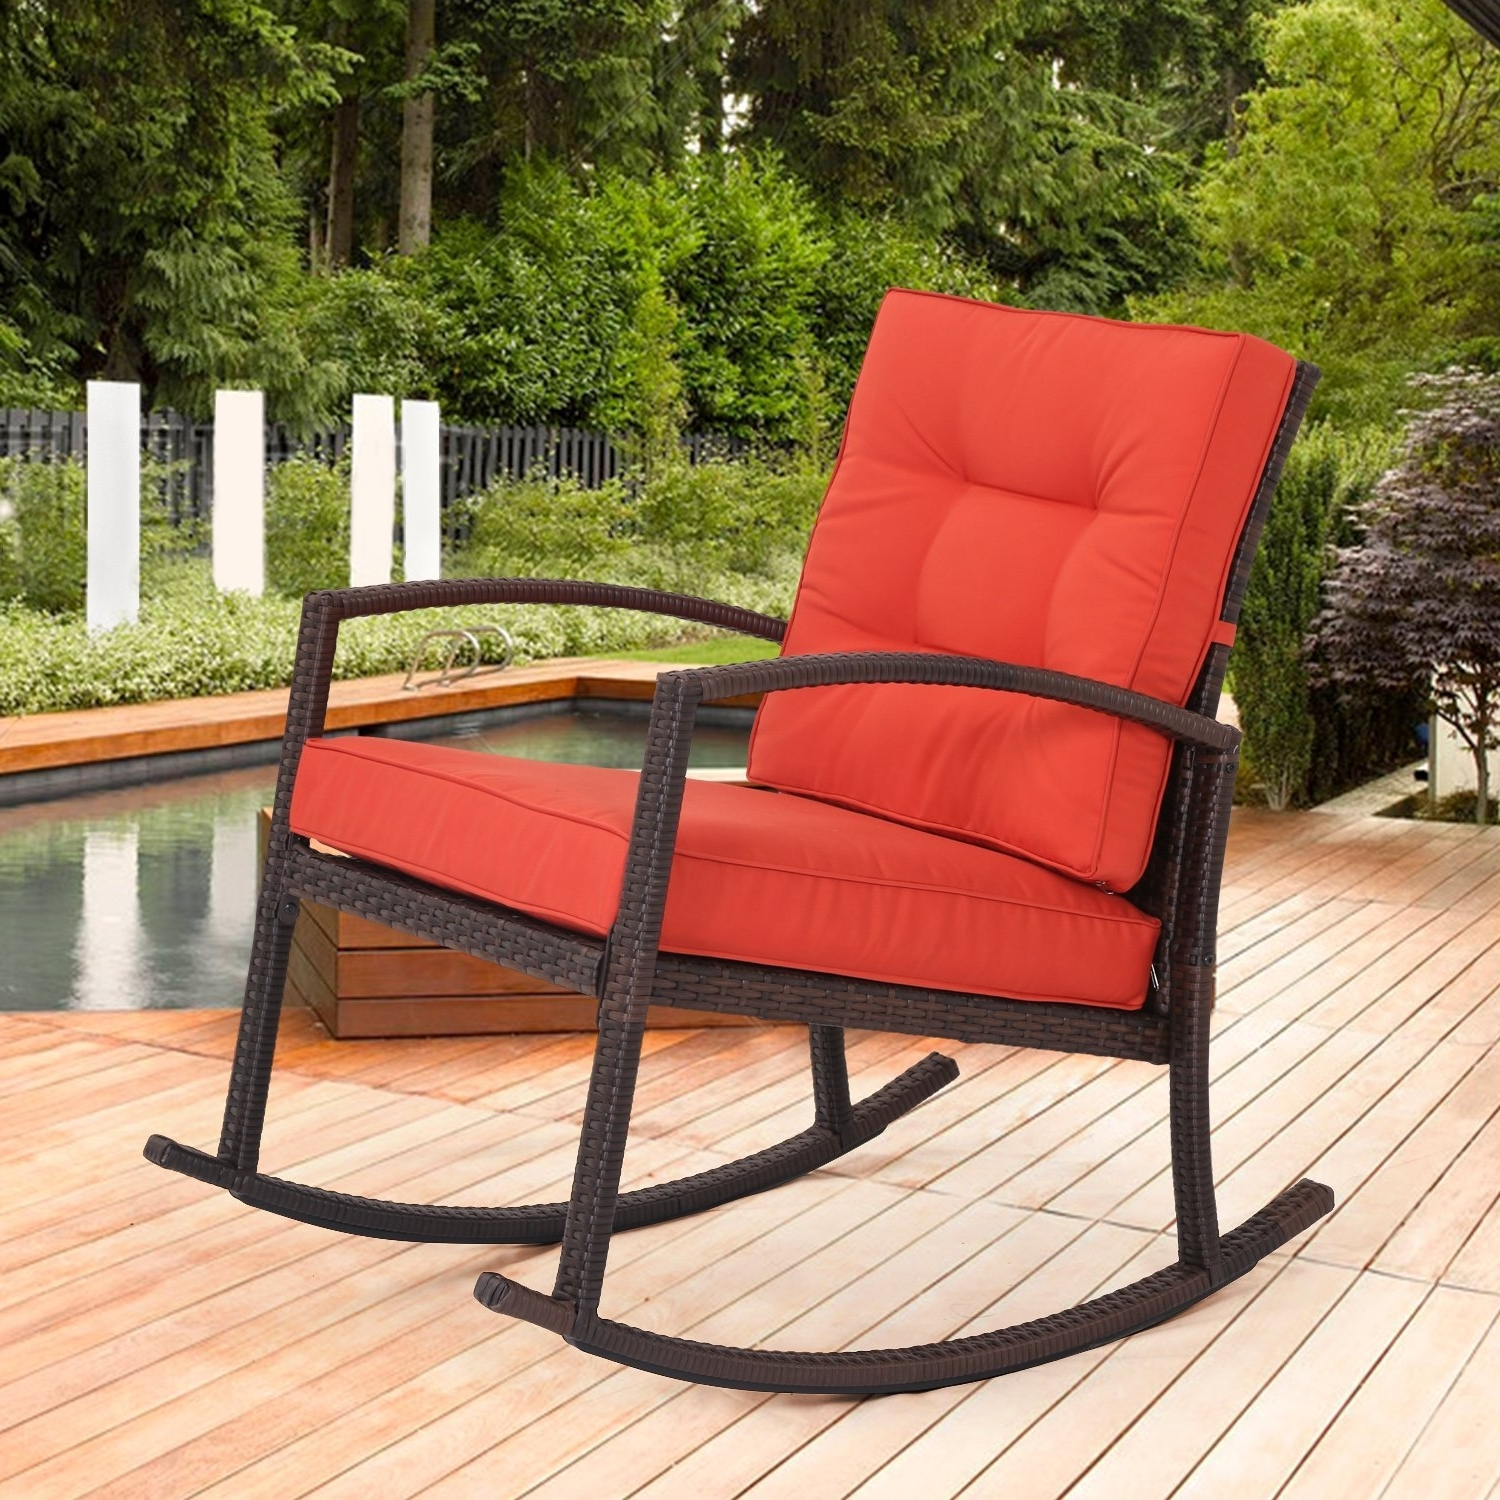 Trendy Stackable Patio Rocking Chairs Pertaining To Patio : Patio Furniture Cushions Matching Umbrella Lovely Furniture (View 14 of 20)